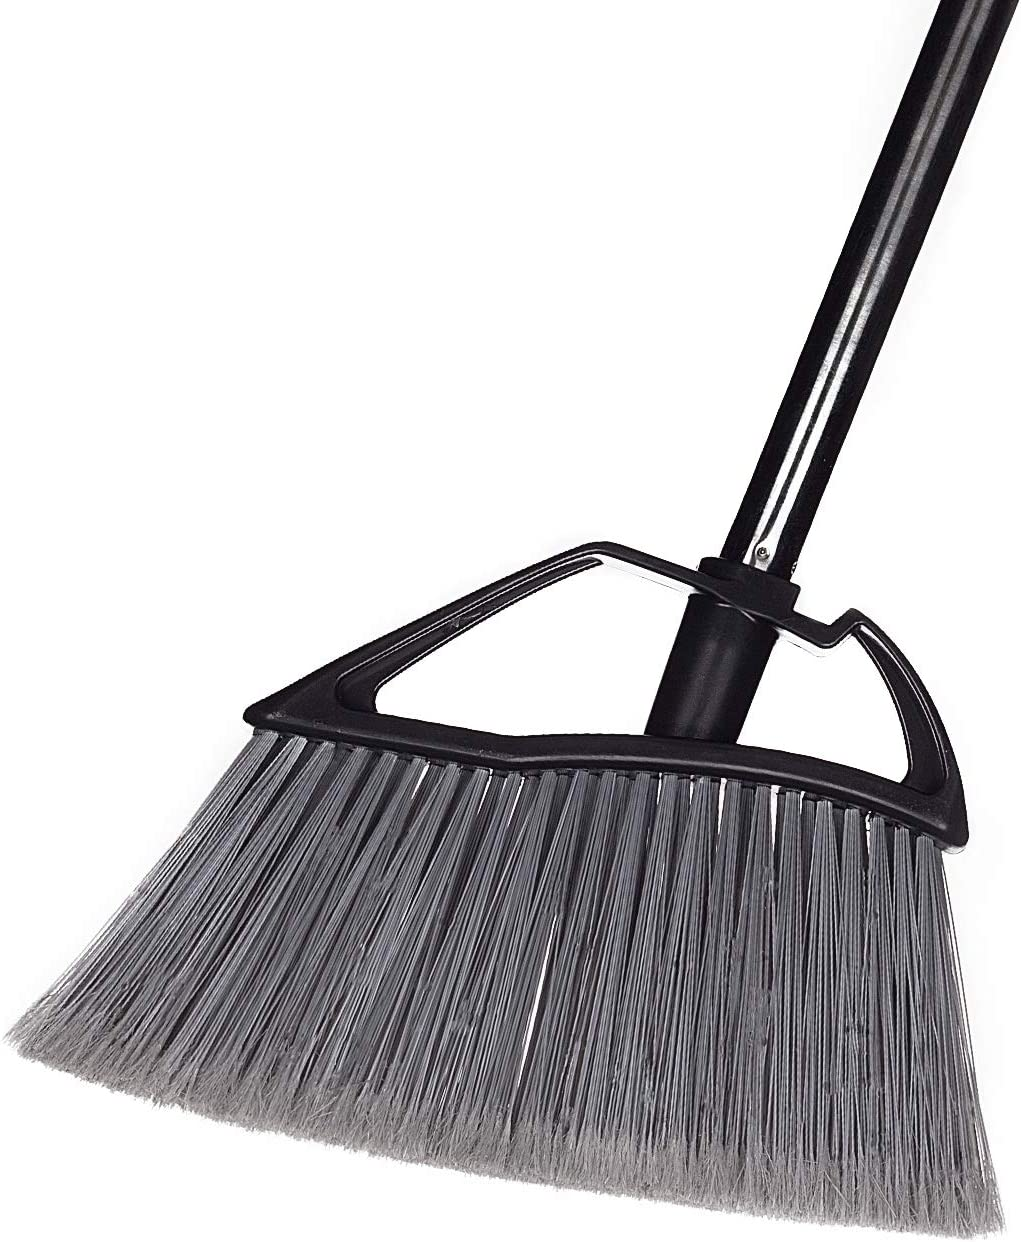 """Jiaxin Angle Broom with 43"""" Adjustable Long Handle, Easy Assembly Indoor Broom for Home Office Sweeping, 1 Pack, Black"""